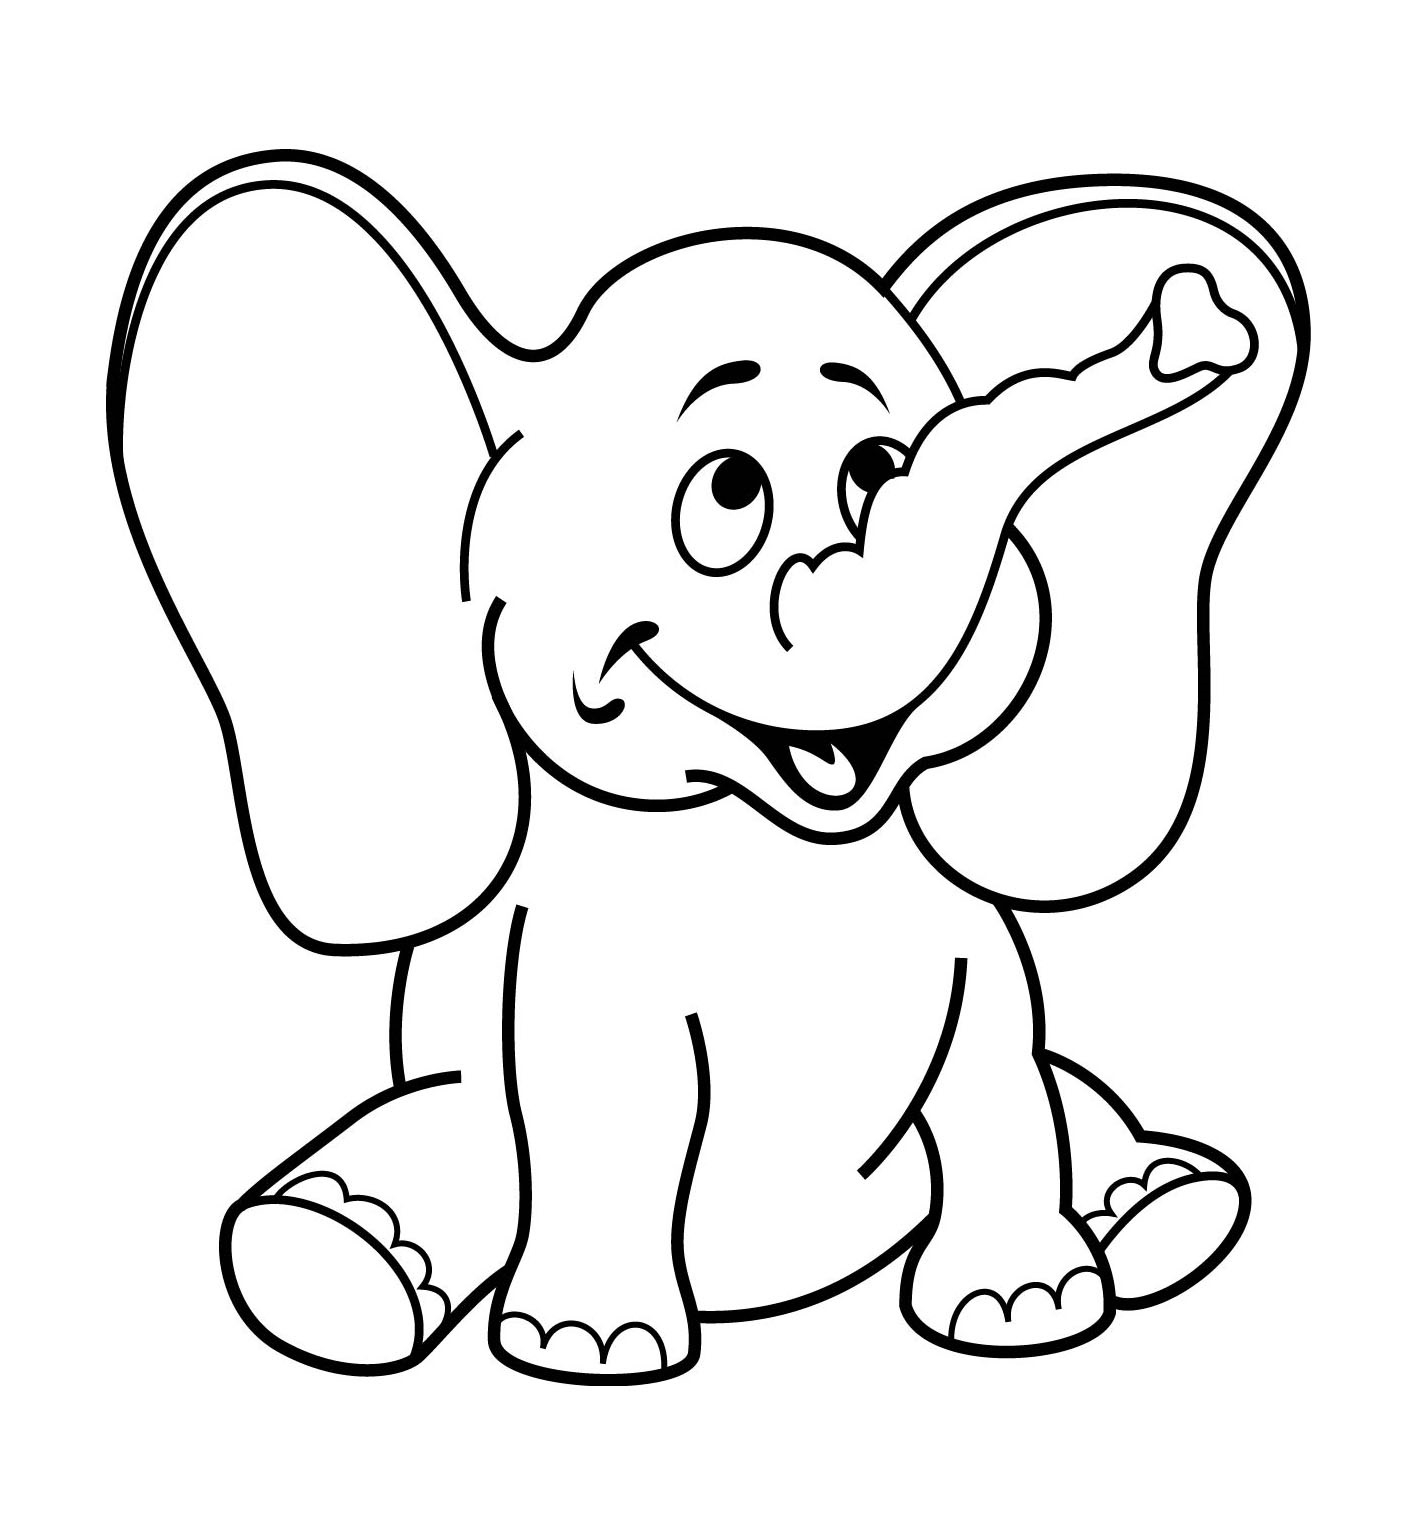 disney printable coloring pages - coloring pages for 3 year olds